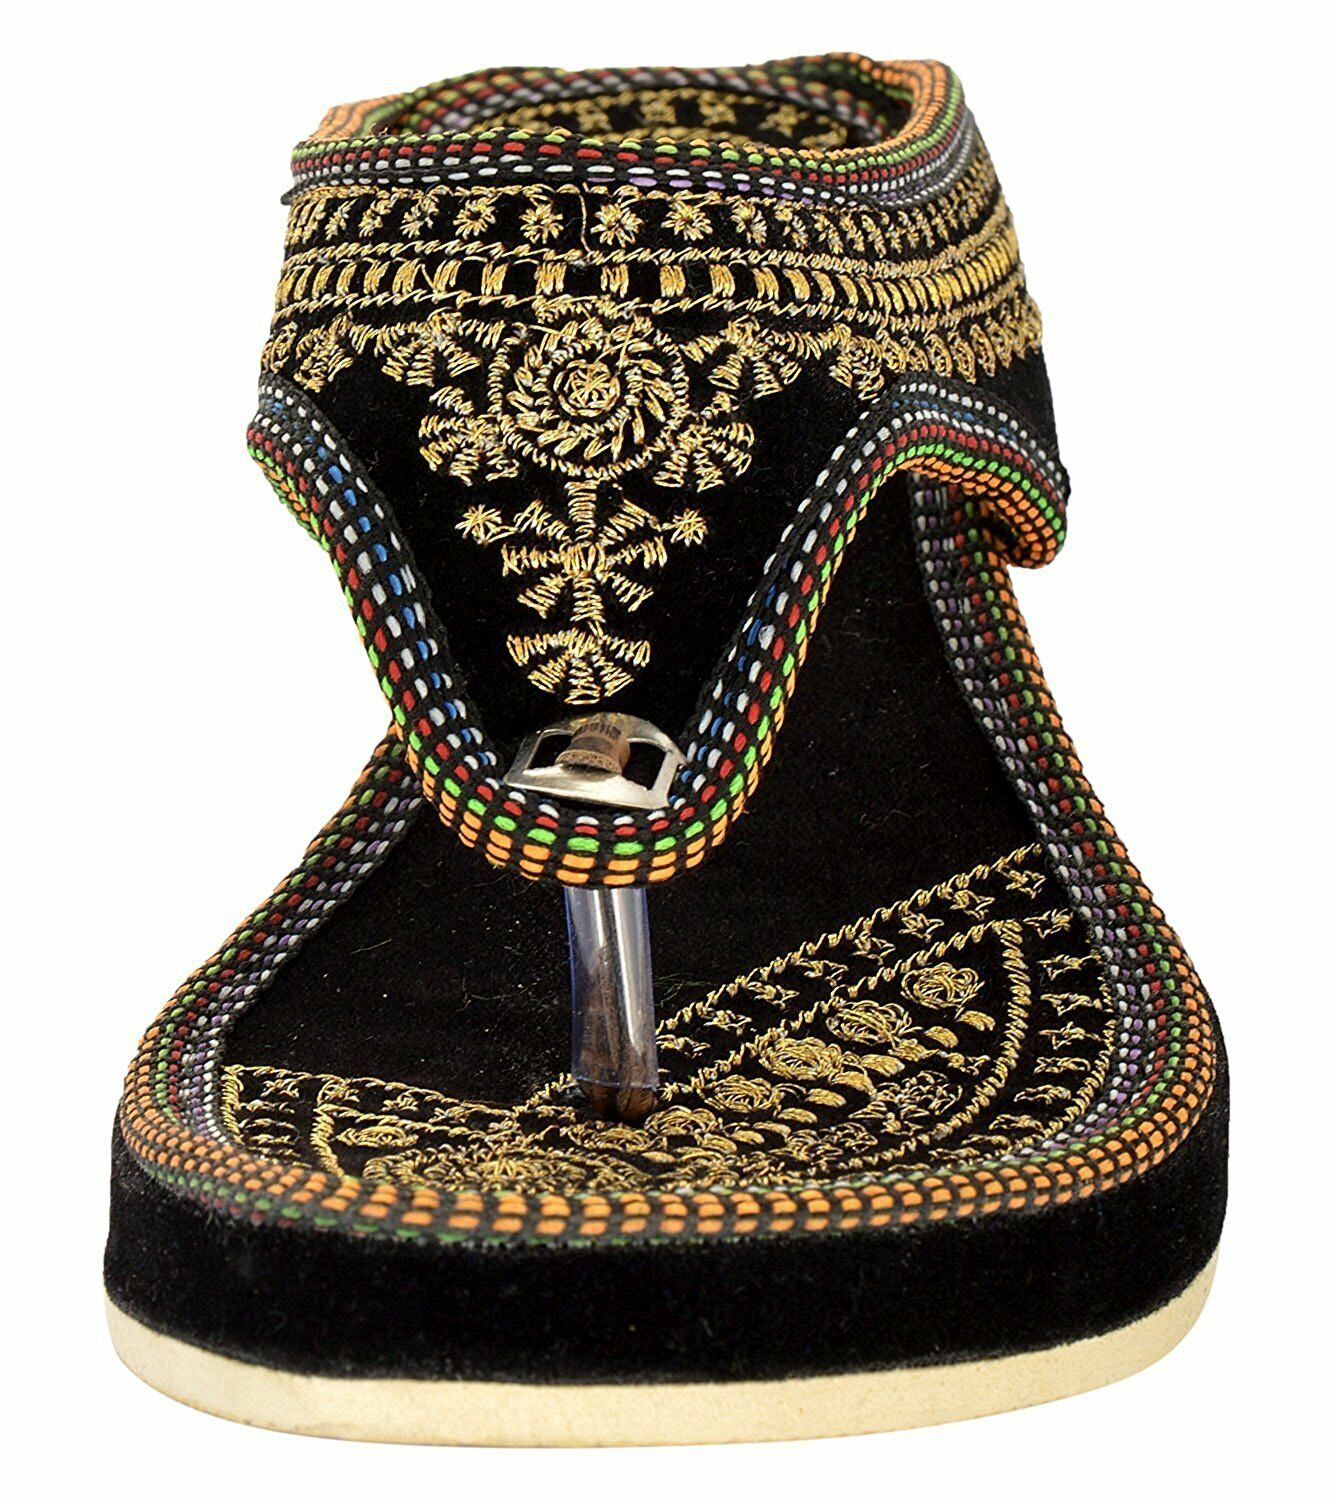 INDIAN BLACK WEDGES ETHNIC SLIPPER CASUAL PARTYWEAR SLIPPER ETHNIC SANDAL SHOES FOR WOMENS GIRL 96543f